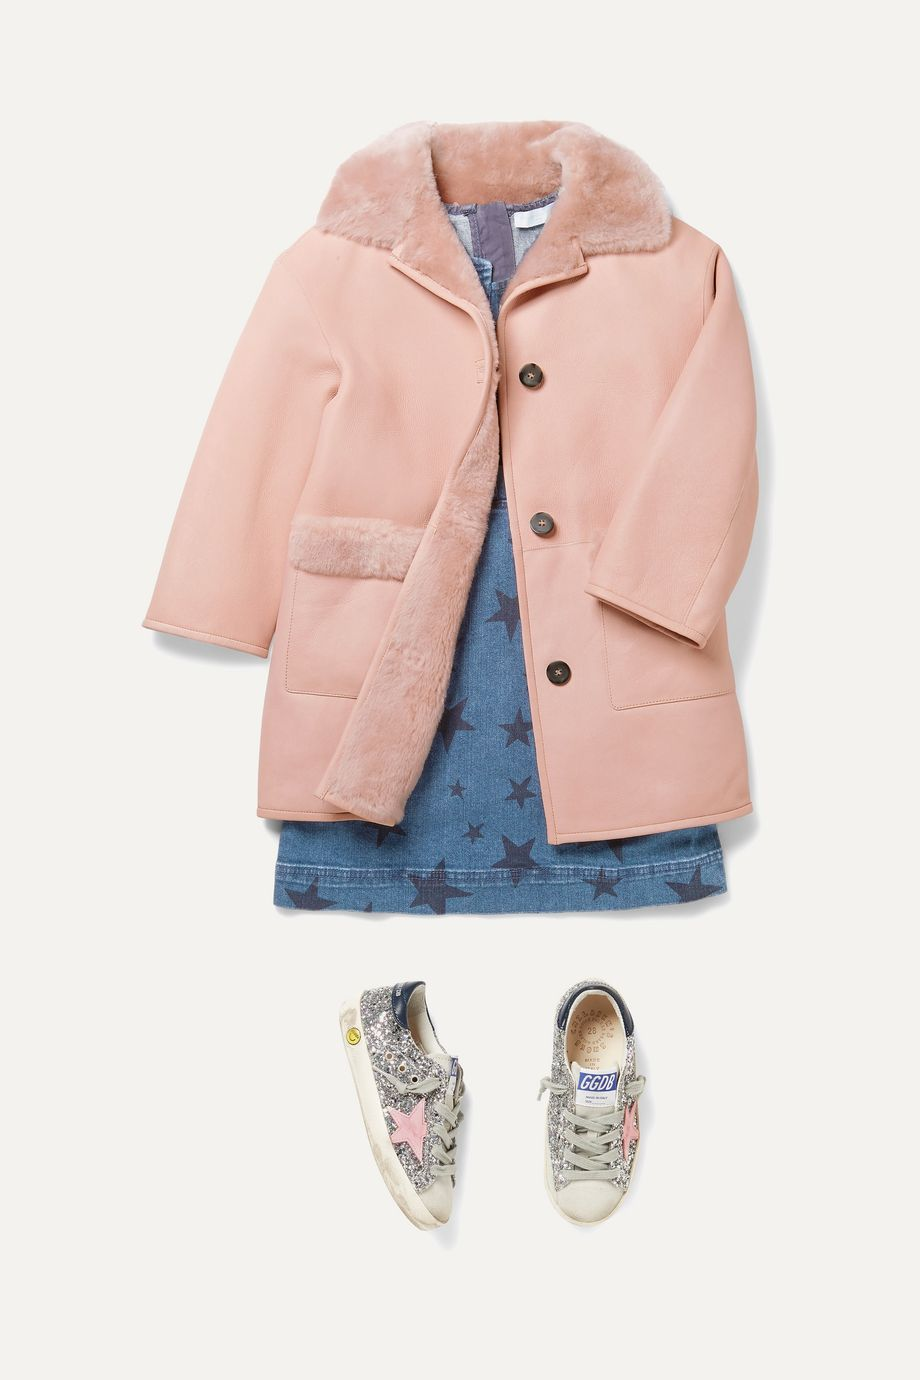 Yves Salomon Kids Ages 4 - 6 shearling coat